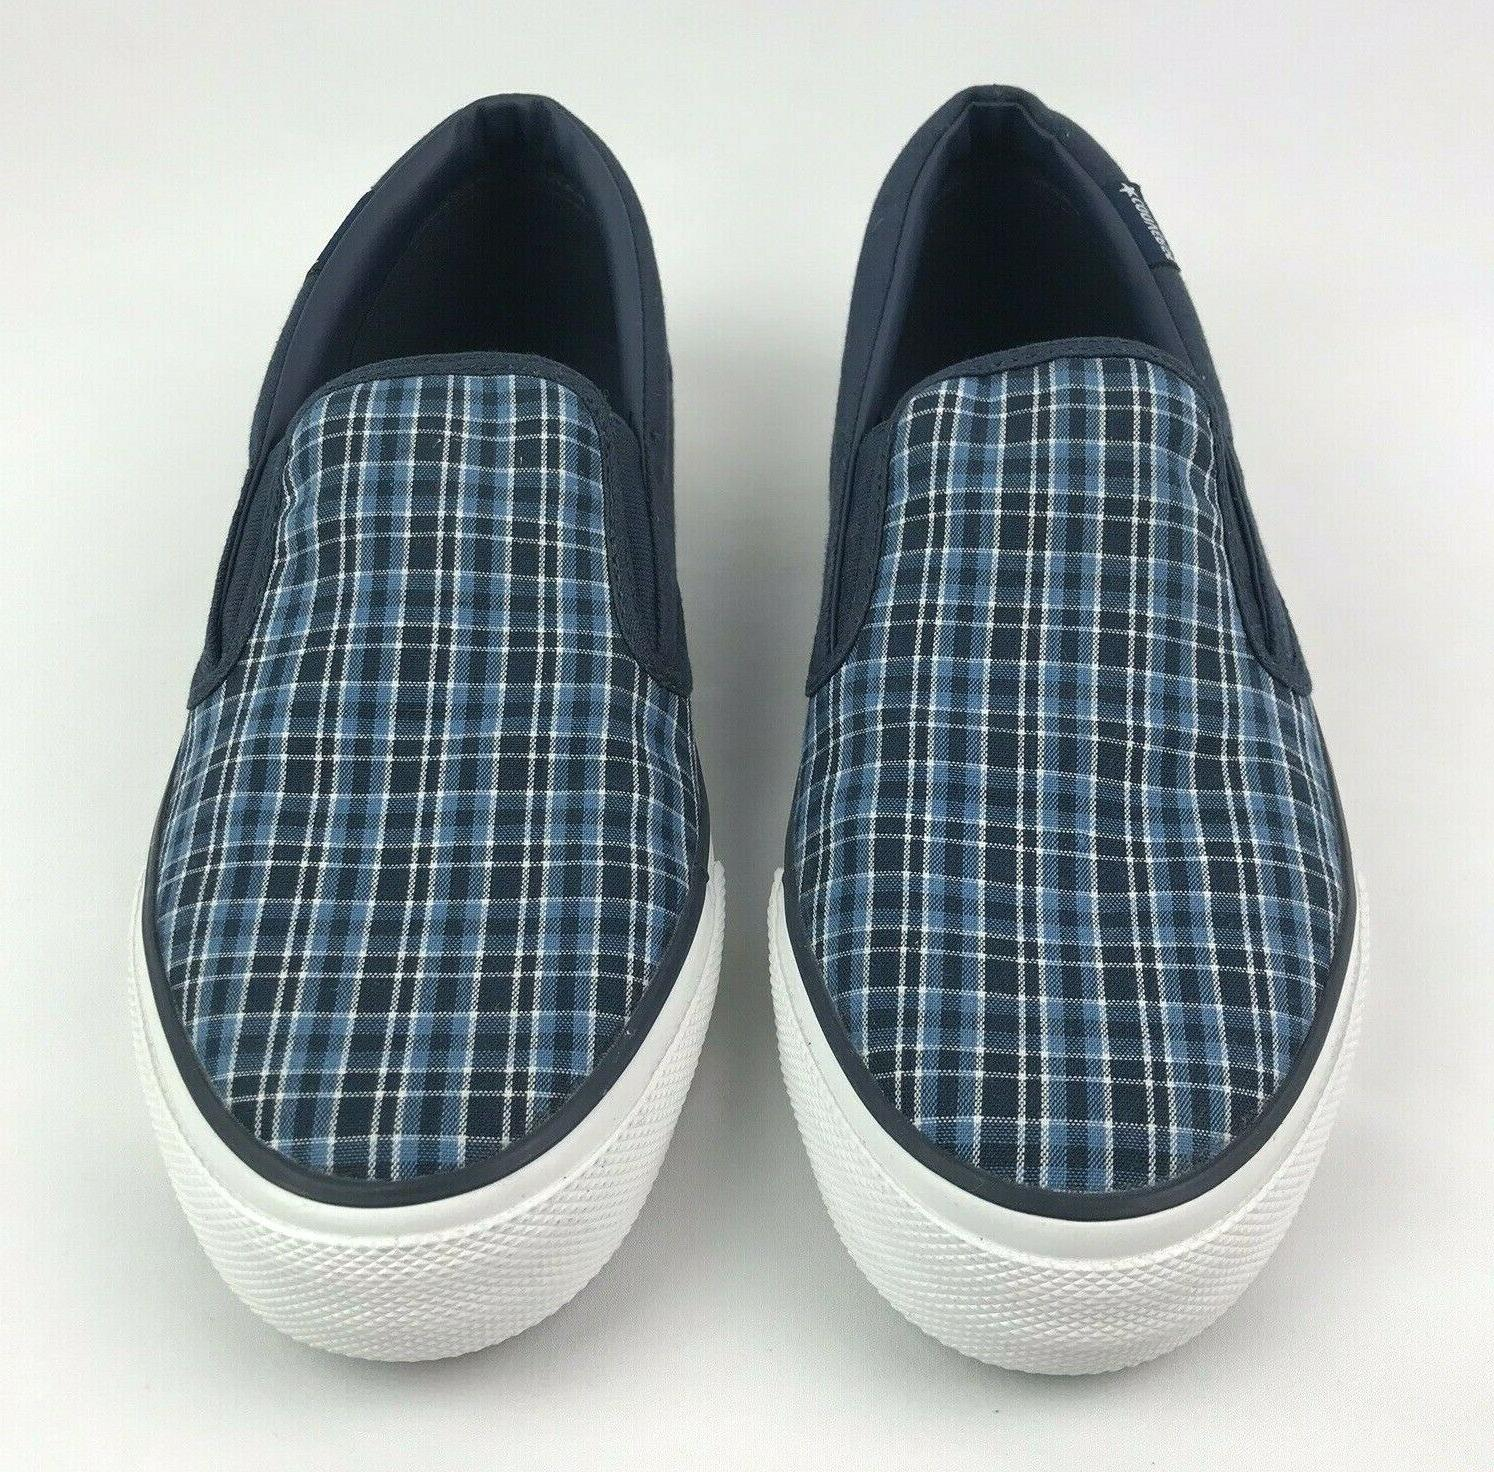 Converse Star 10 Plaid Deck Slip On Shoes Sneakers NEW